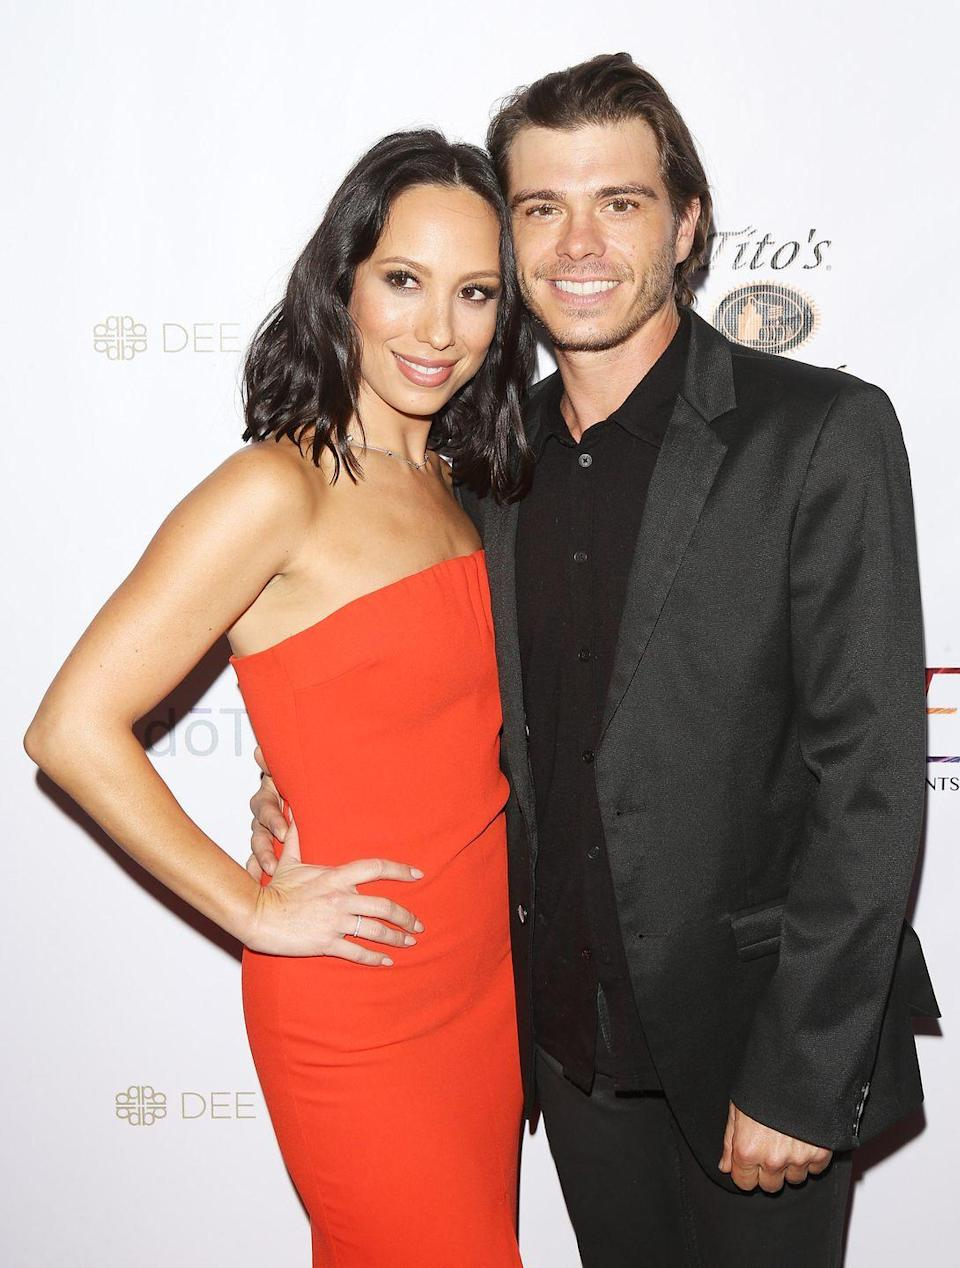 <p><em>DWTS </em>pro dancer Cheryl Burke first met actor Matthew Lawrence on the set of the reality show—but he wasn't competing. Nope, Cheryl was paired up with Matthew's older brother, Joey Lawrence. Cheryl and Matthew began dating in 2006 and got married in 2019. </p>